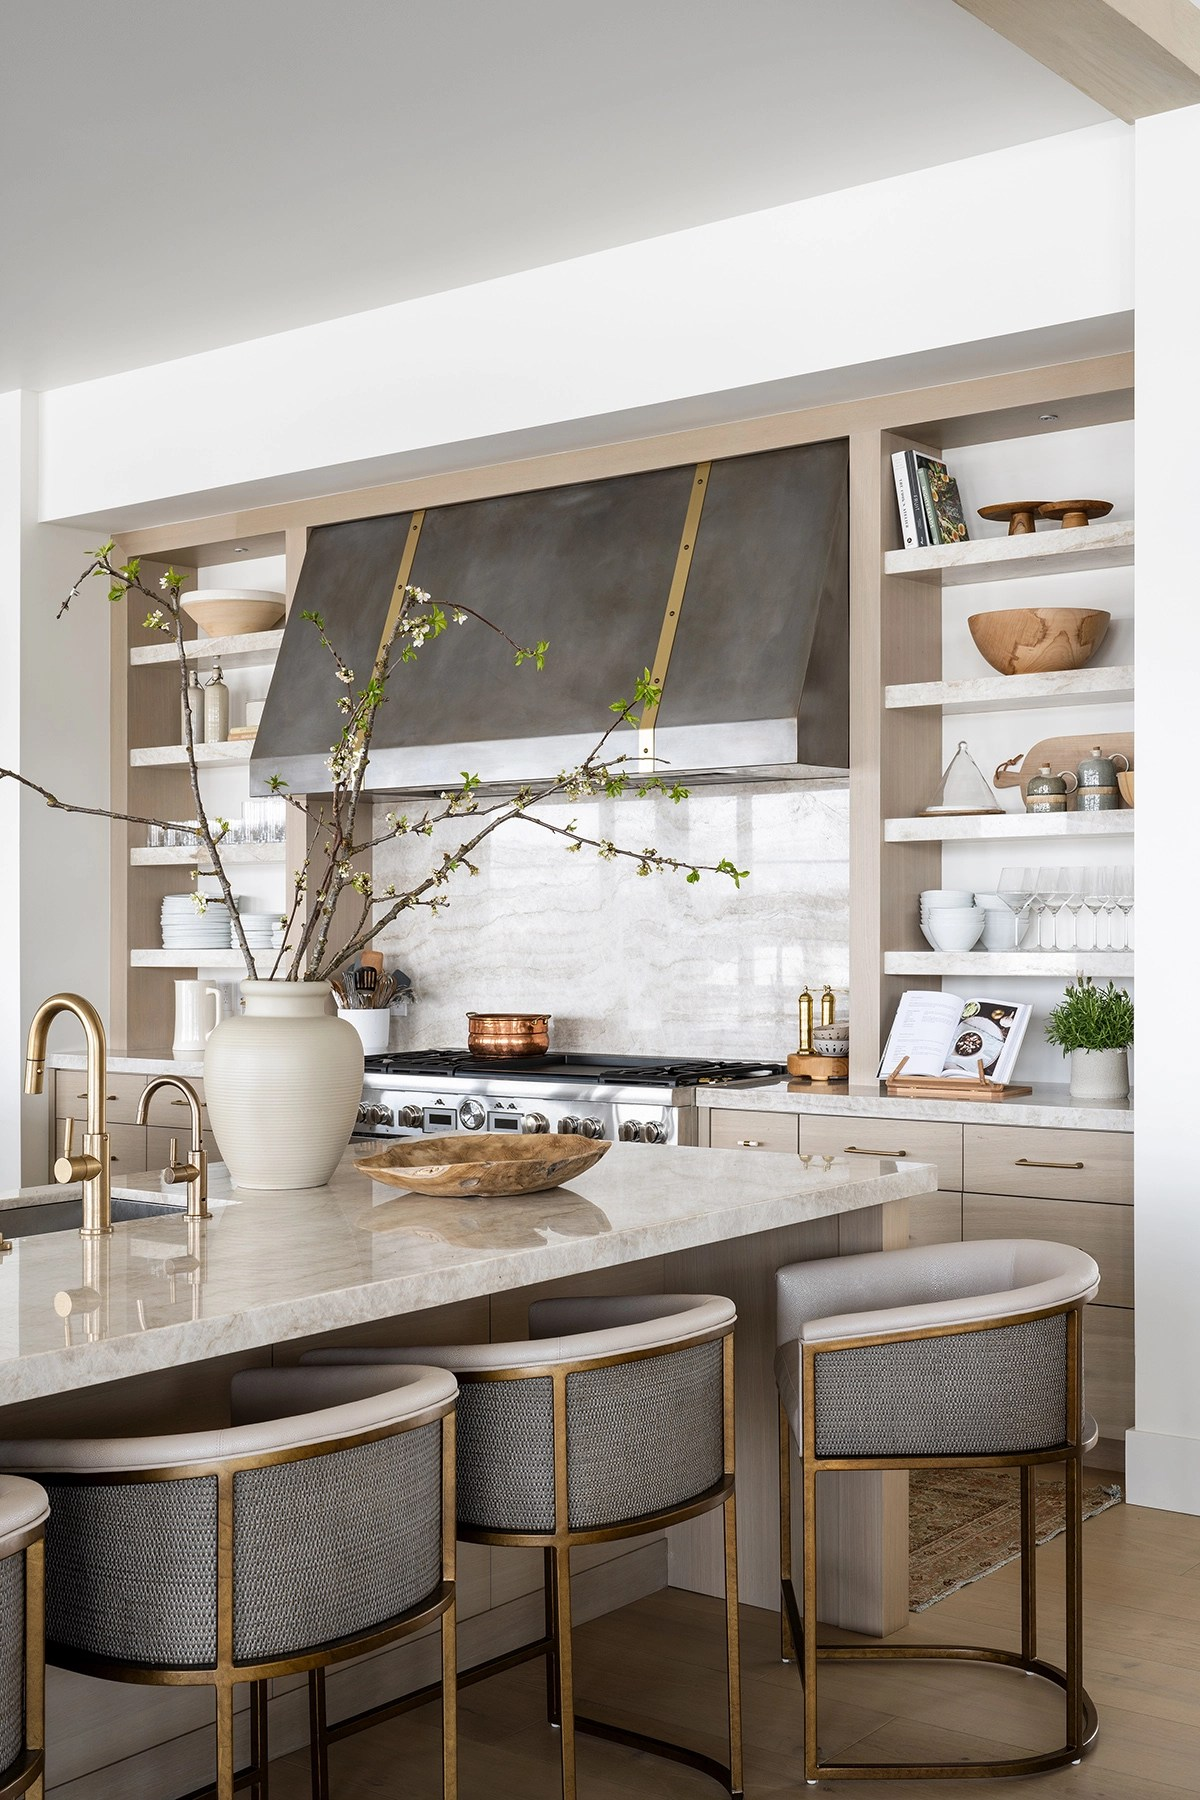 PC Contemporary Project: The Dining Space, Kitchen, & Dining Nook